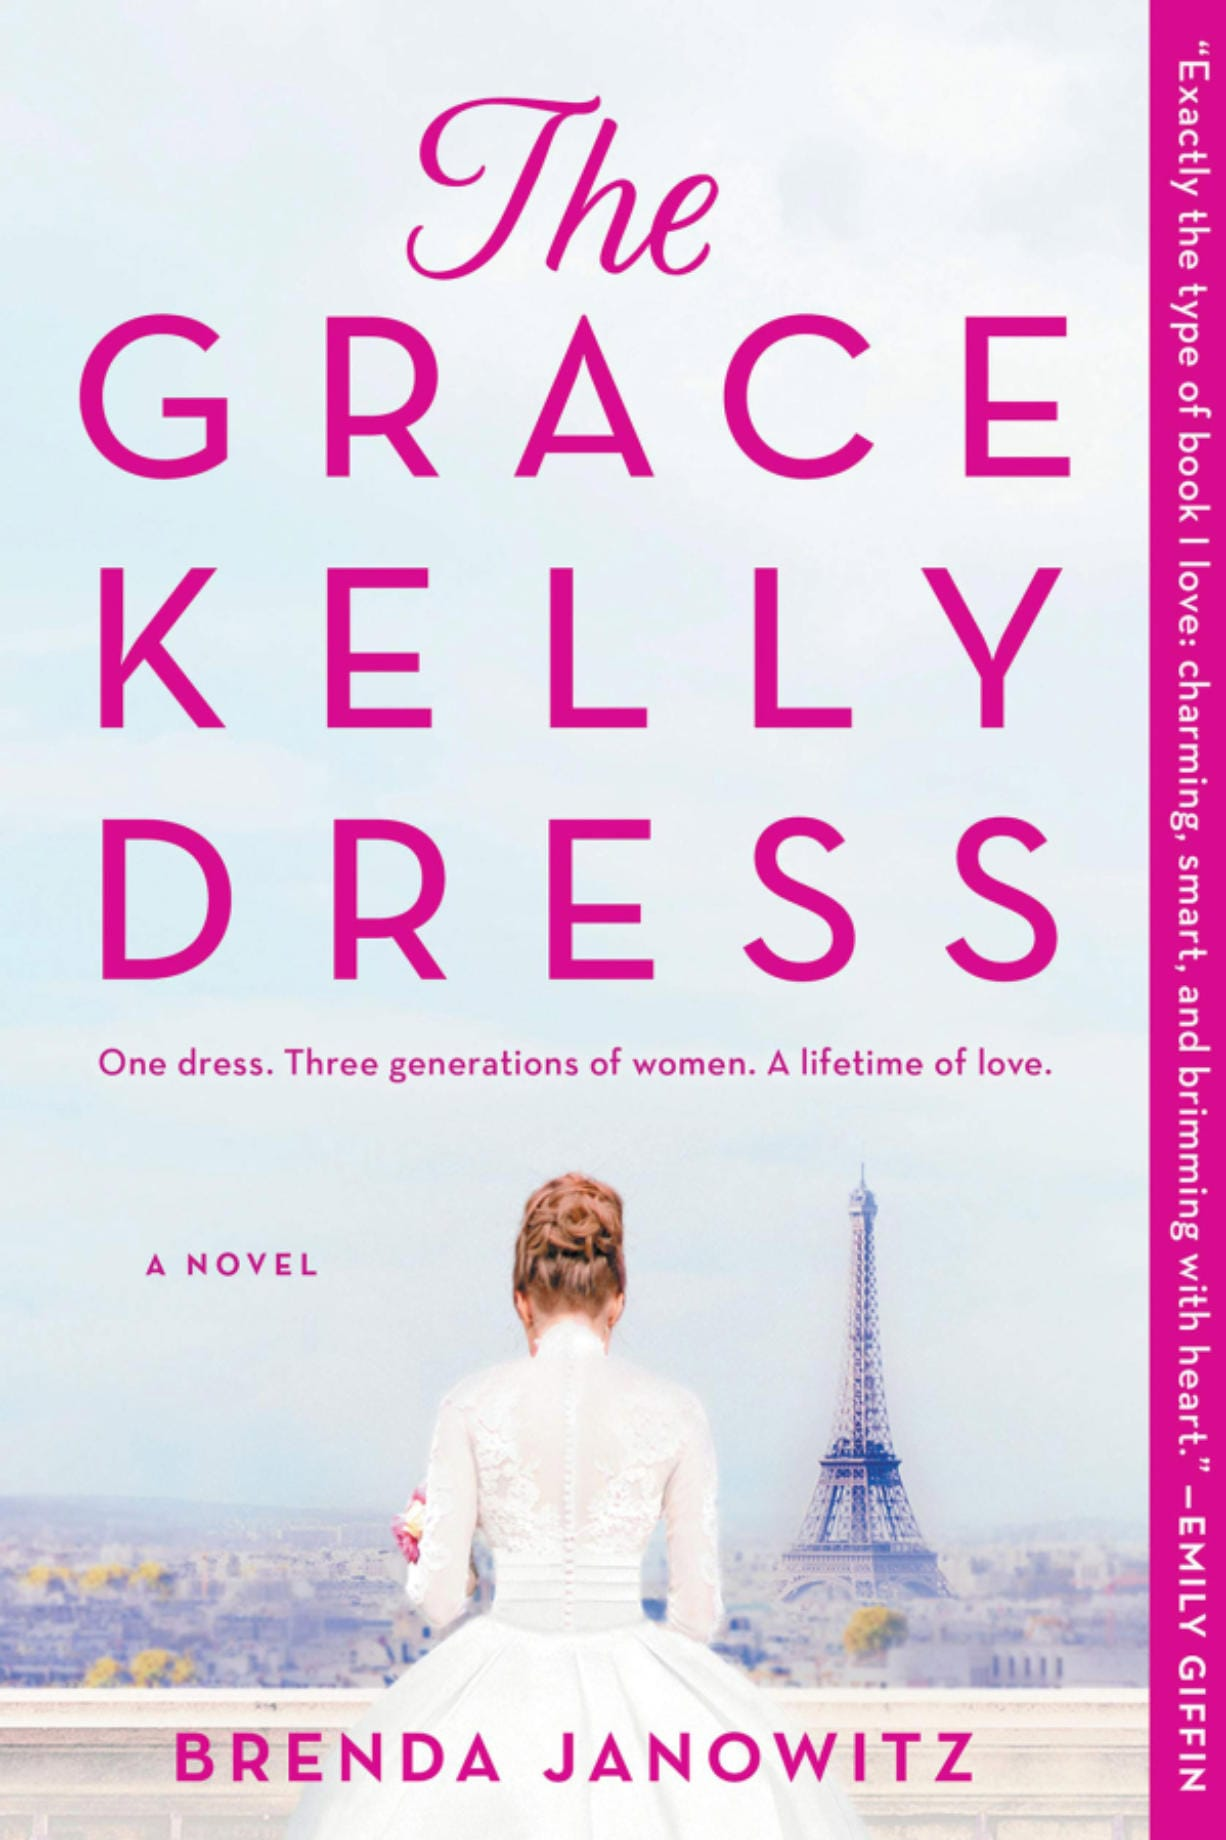 """The Grace Kelly Dress"" by Brenda Janowitz."